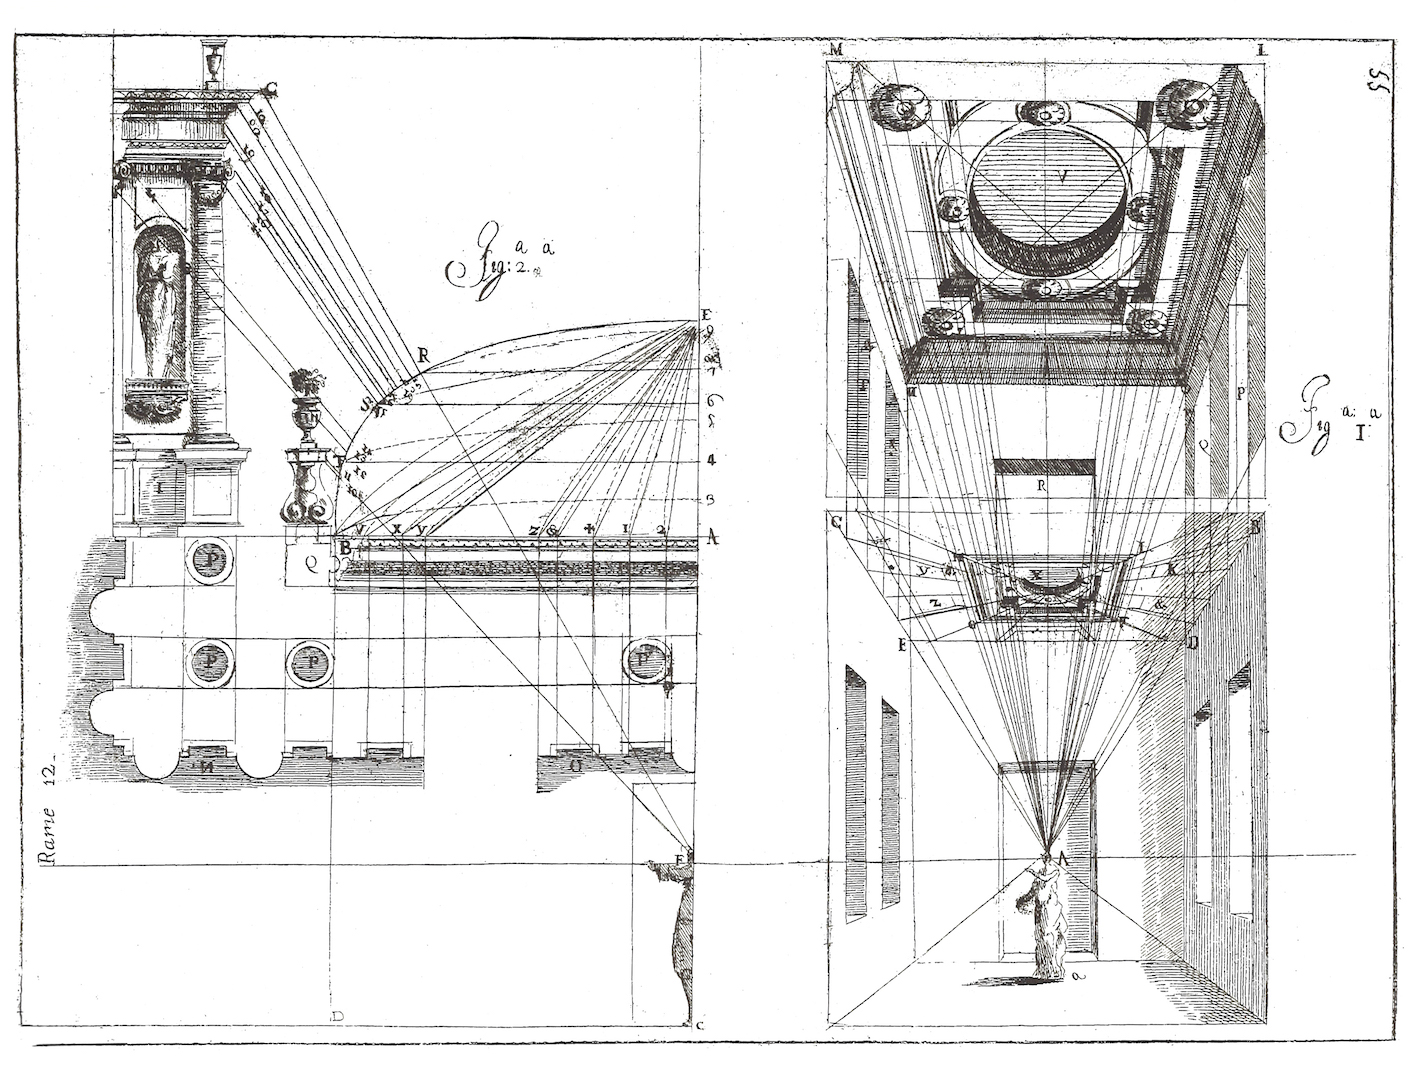 """Ferdinando Galli Bibbiena, L'architettura civile, Parma 1711, part fourth, plate 12."""